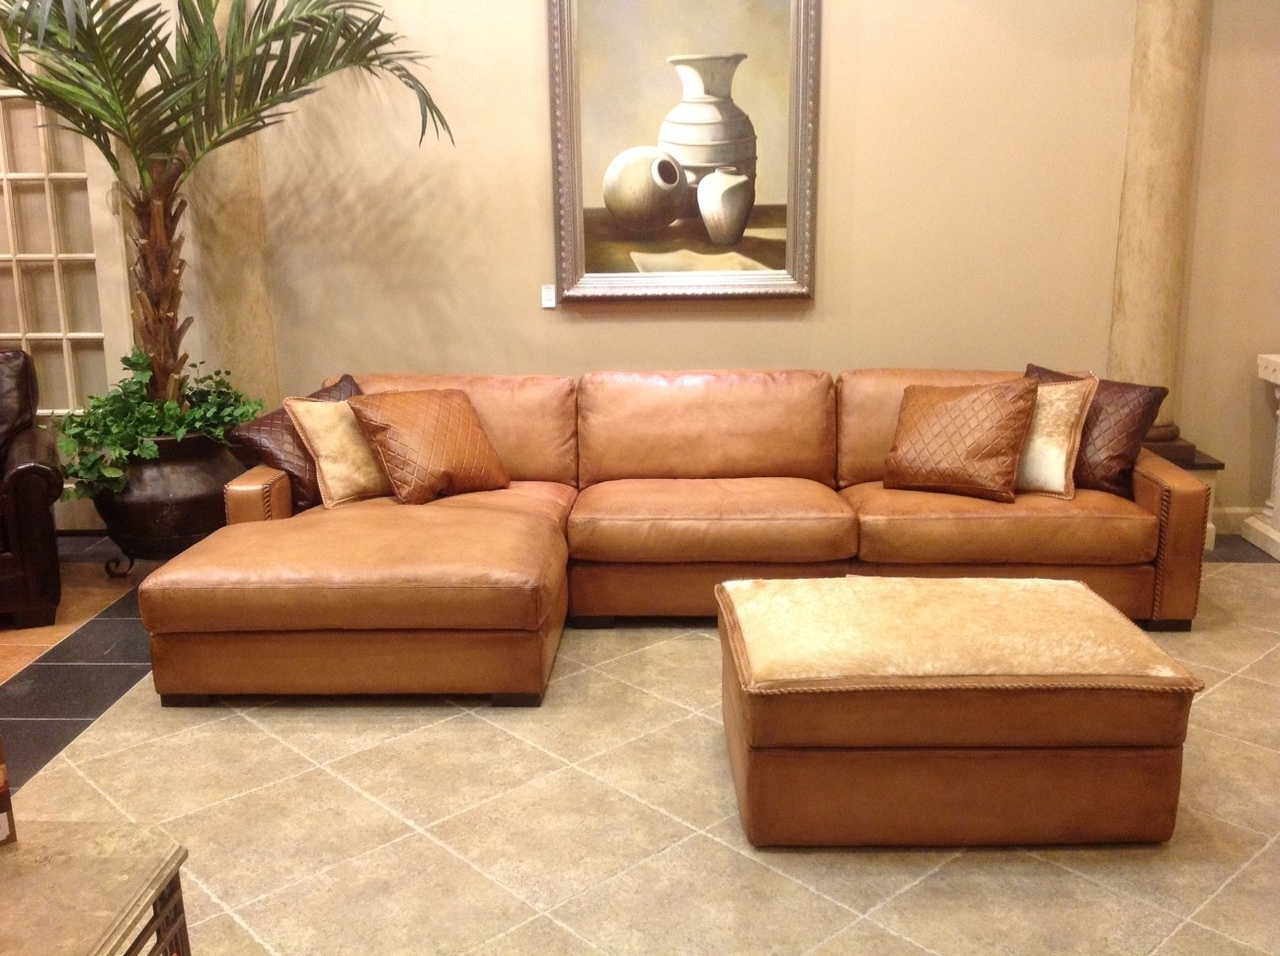 Popular Elegant Sectional Sofas In Sectional Sofas Leather Elegant Delighful Couches With Chaise New (View 19 of 20)